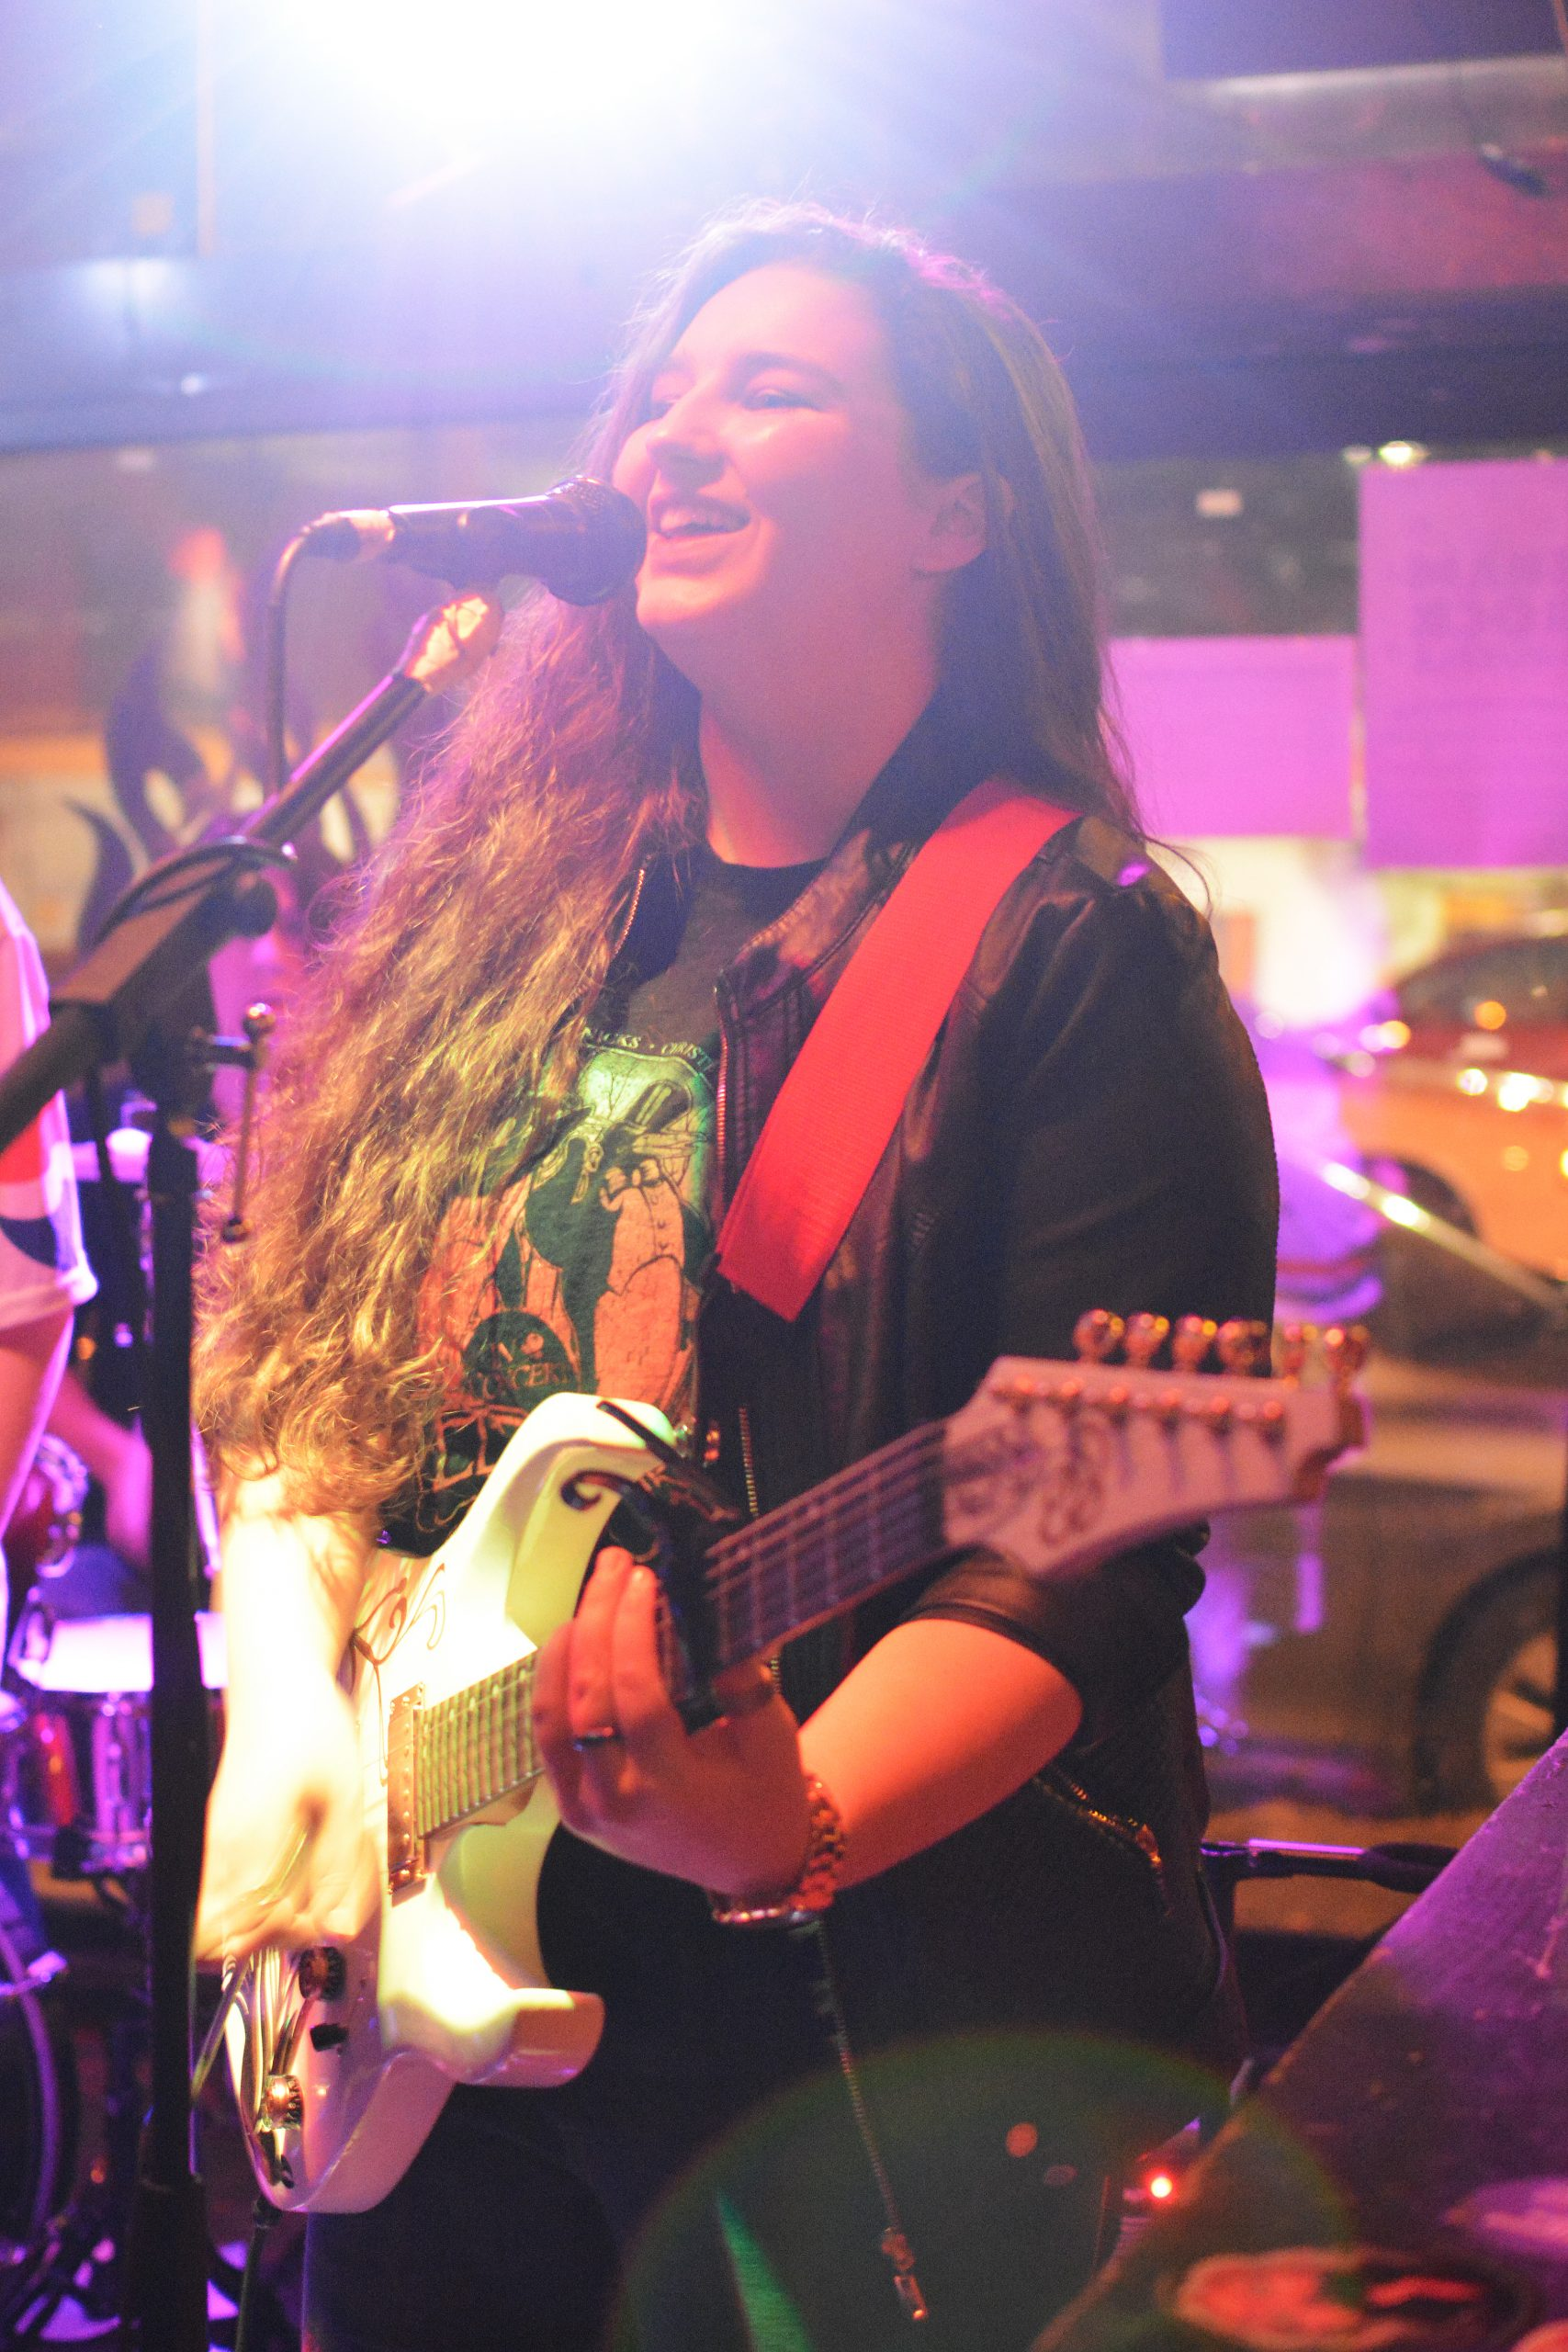 Elly Bird plays the electric guitar and sings